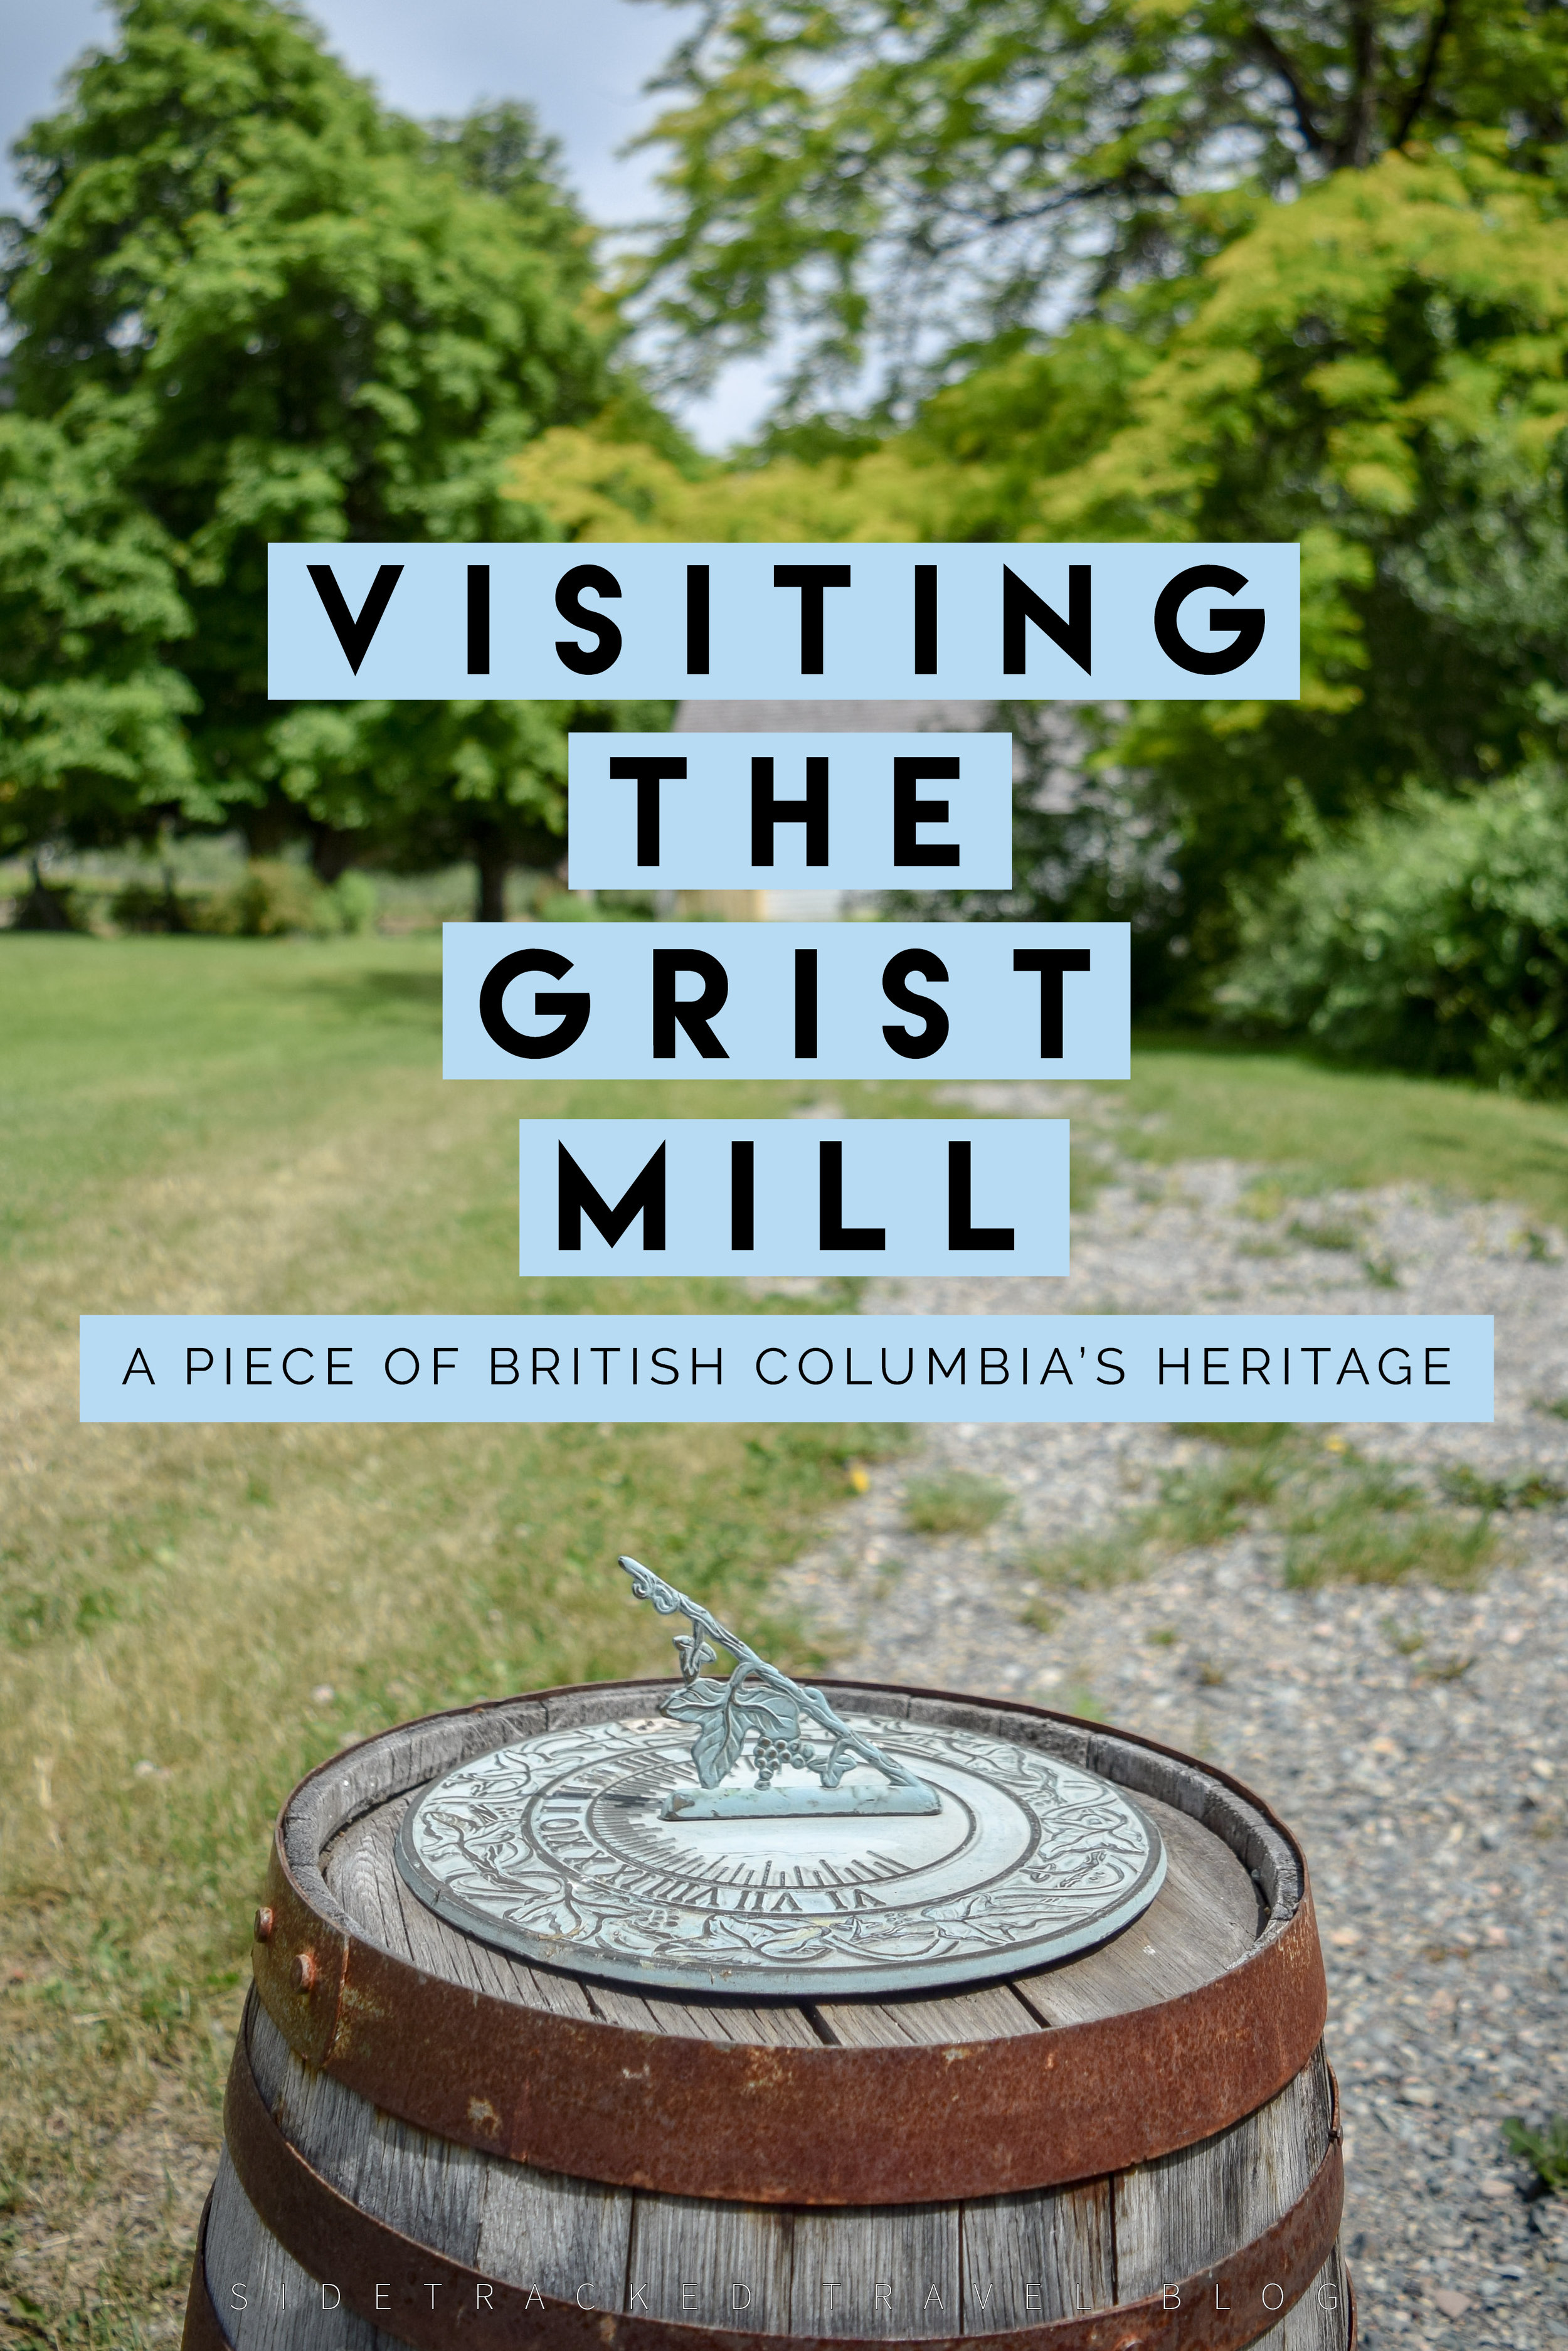 British Columbia's southern interior region might be best known for its abundance of local wineries, desert-like summer climate, and plethora of water activities, but for those of you looking to get to know the area's background and culture better, look no further than the historic Grist Mill & Gardens.